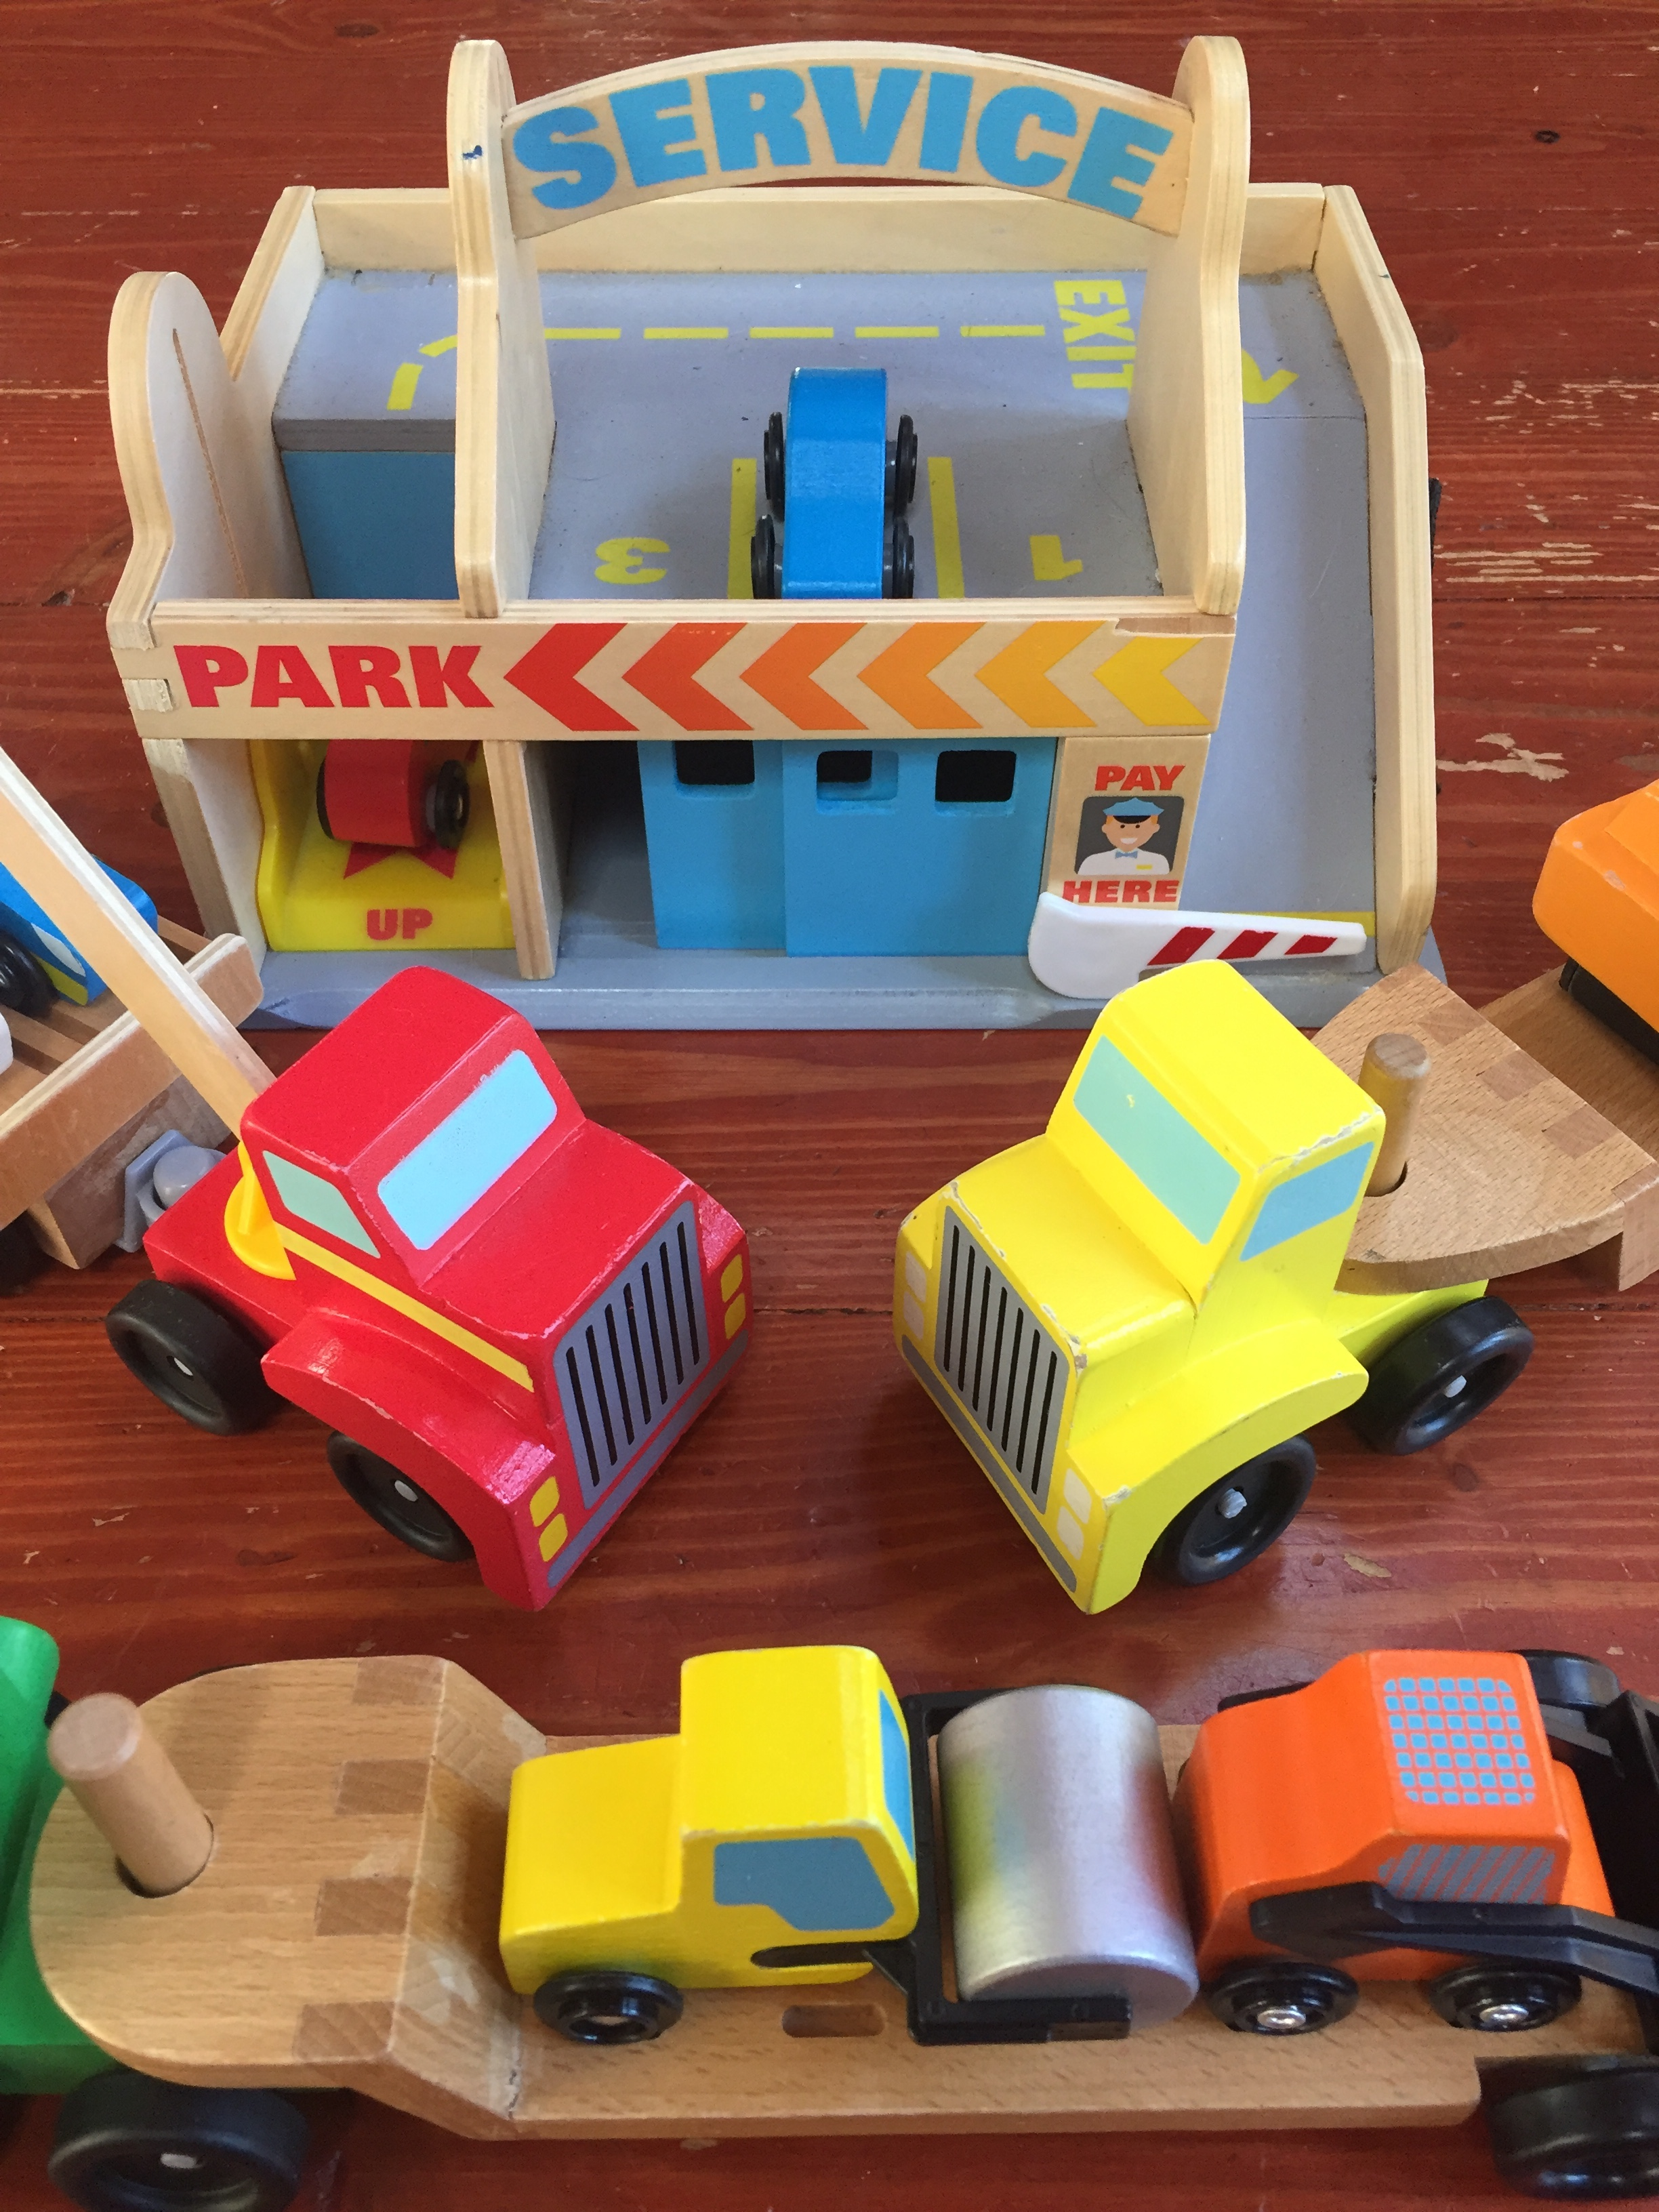 wooden vehicle toys Service Station Garage Play set from Melissa & Doug Skid steer and steam roller on flatbed and other transport trucks